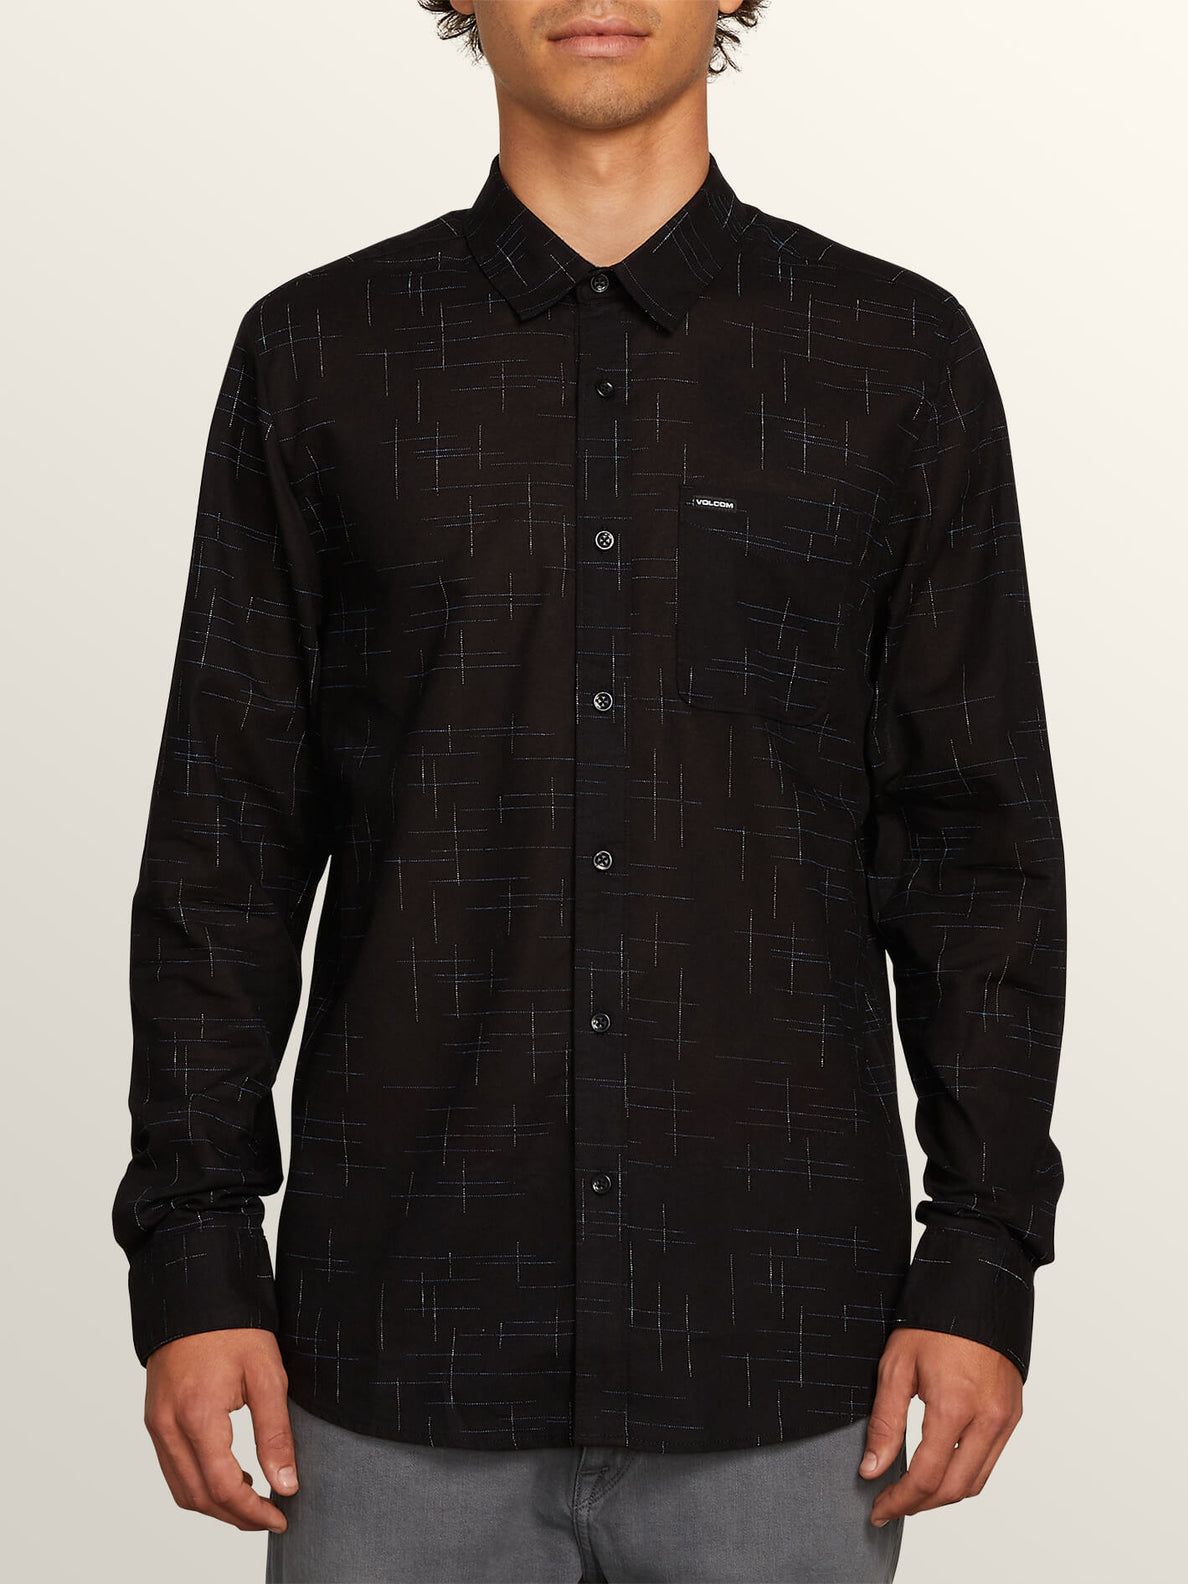 Quency Dot Long Sleeve Shirt In Black, Front View